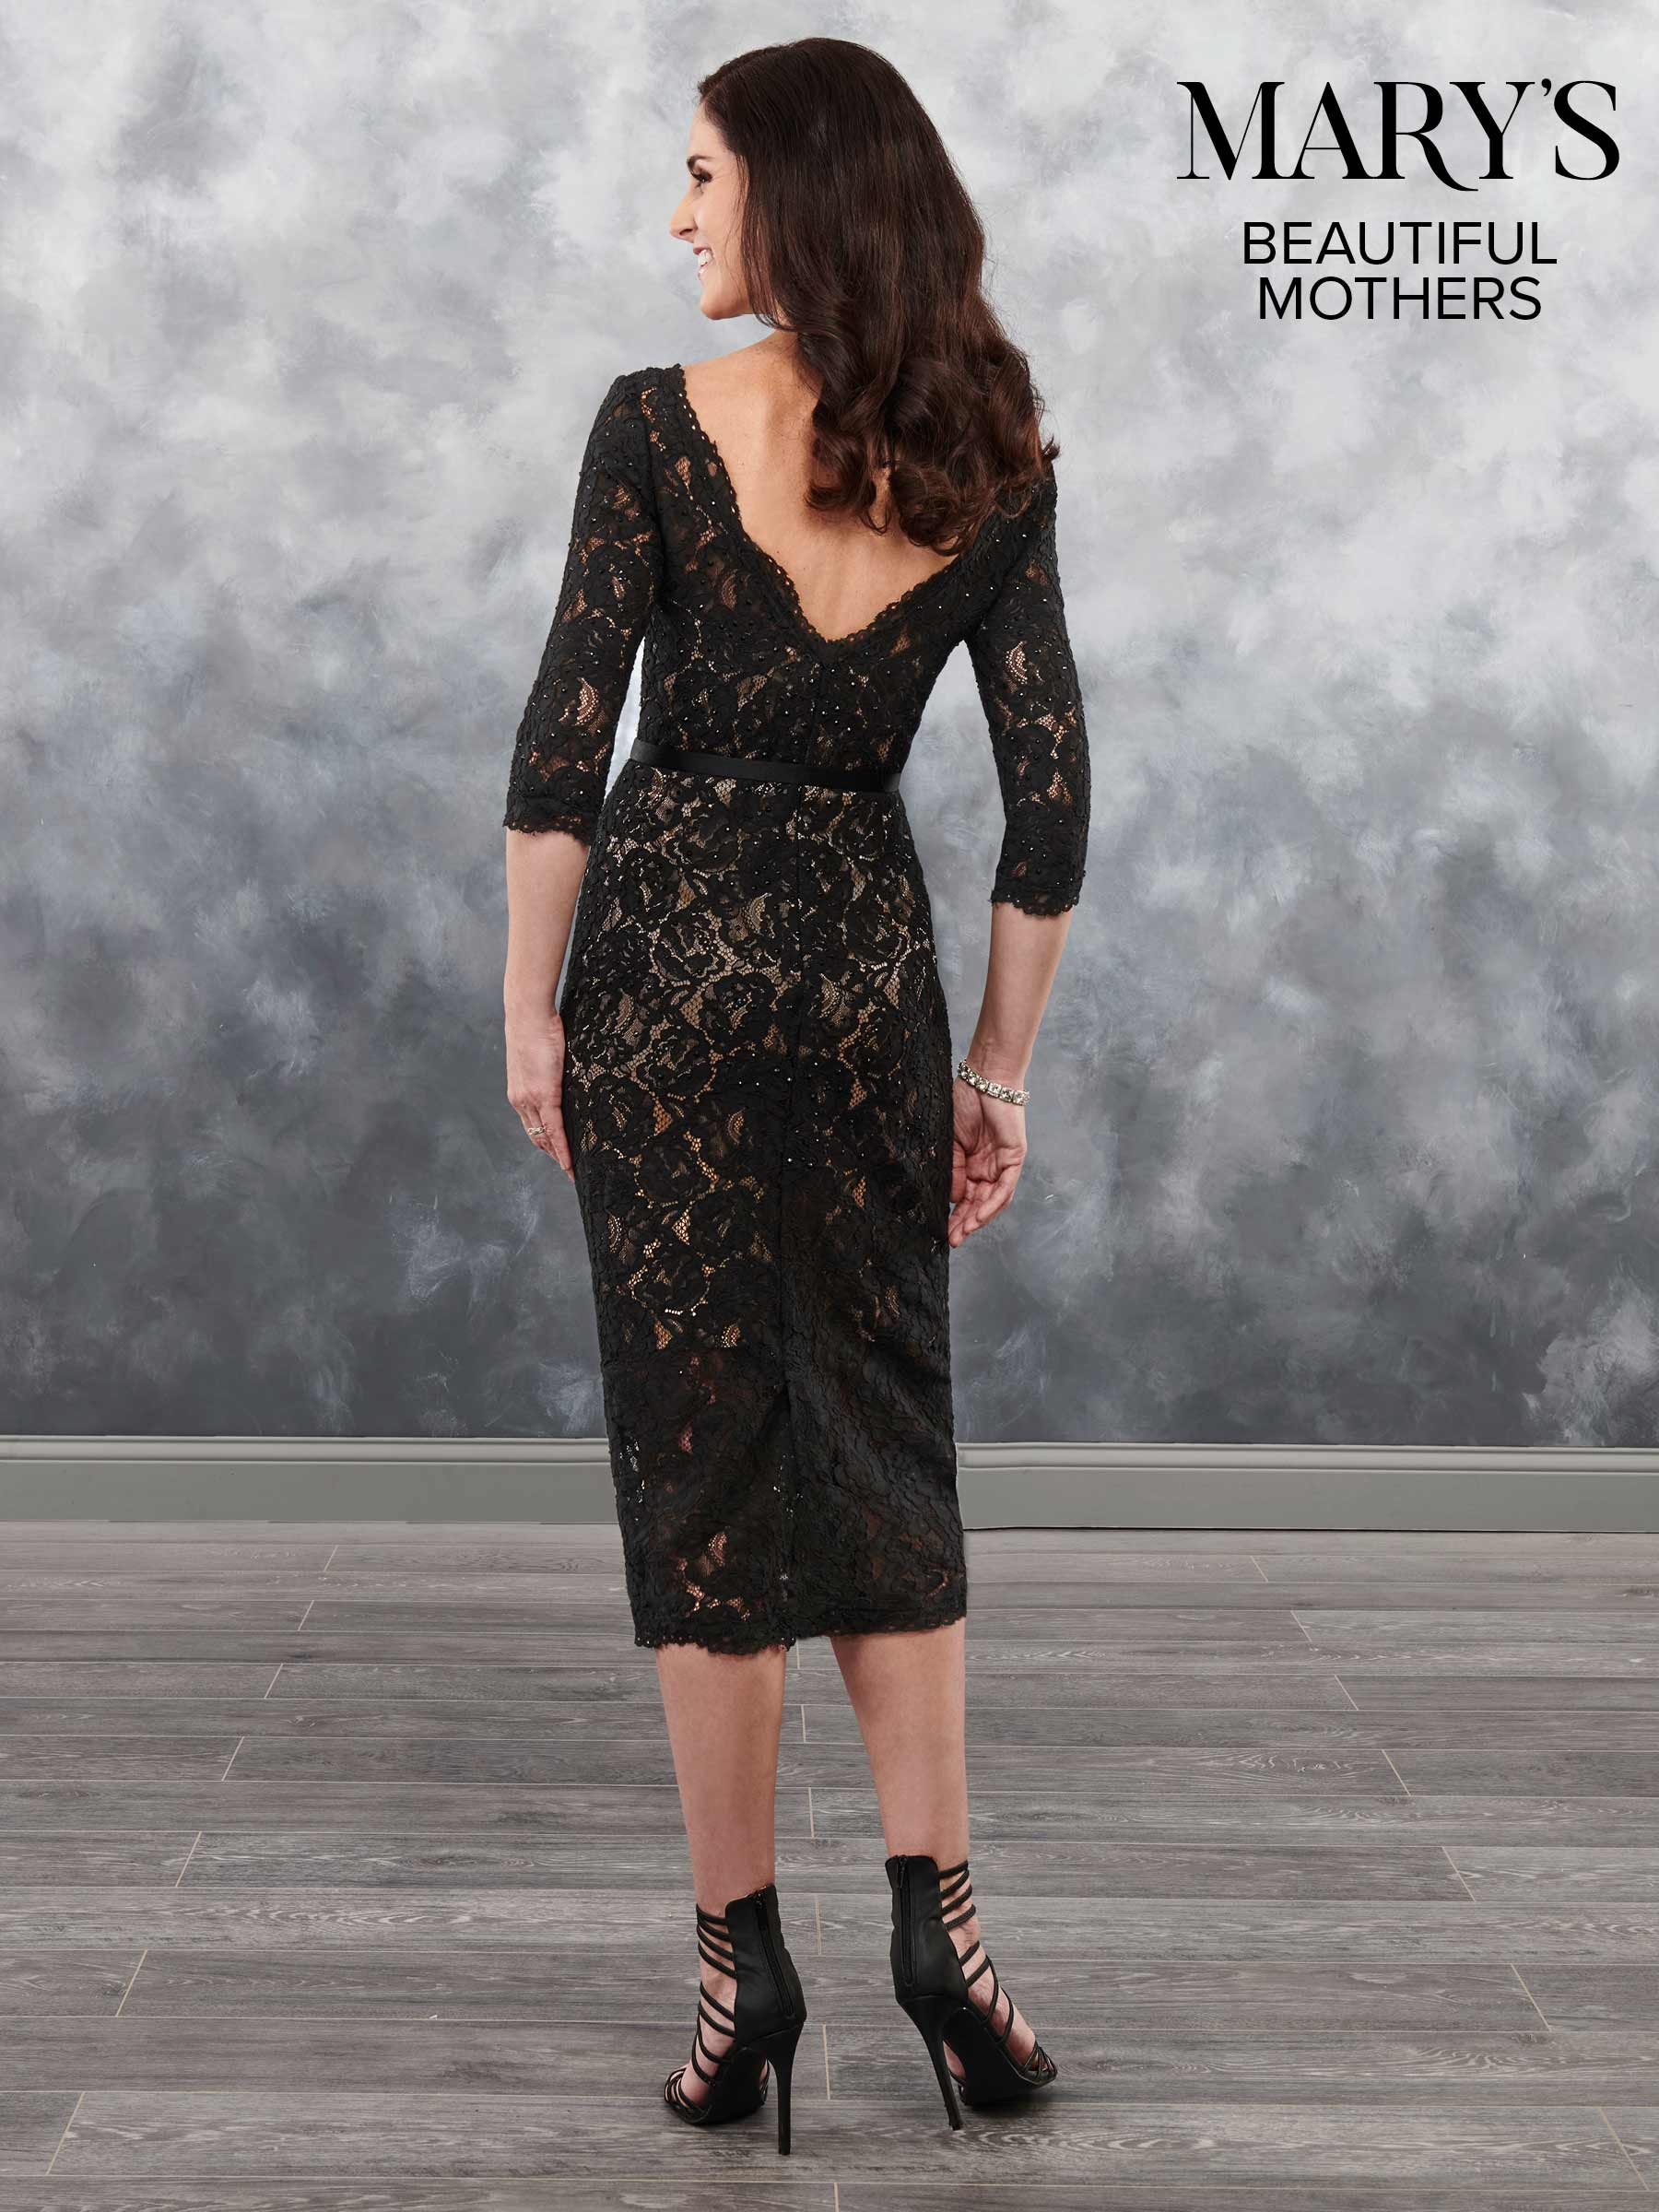 Mother Of The Bride Dresses | Beautiful Mothers | Style - MB8035